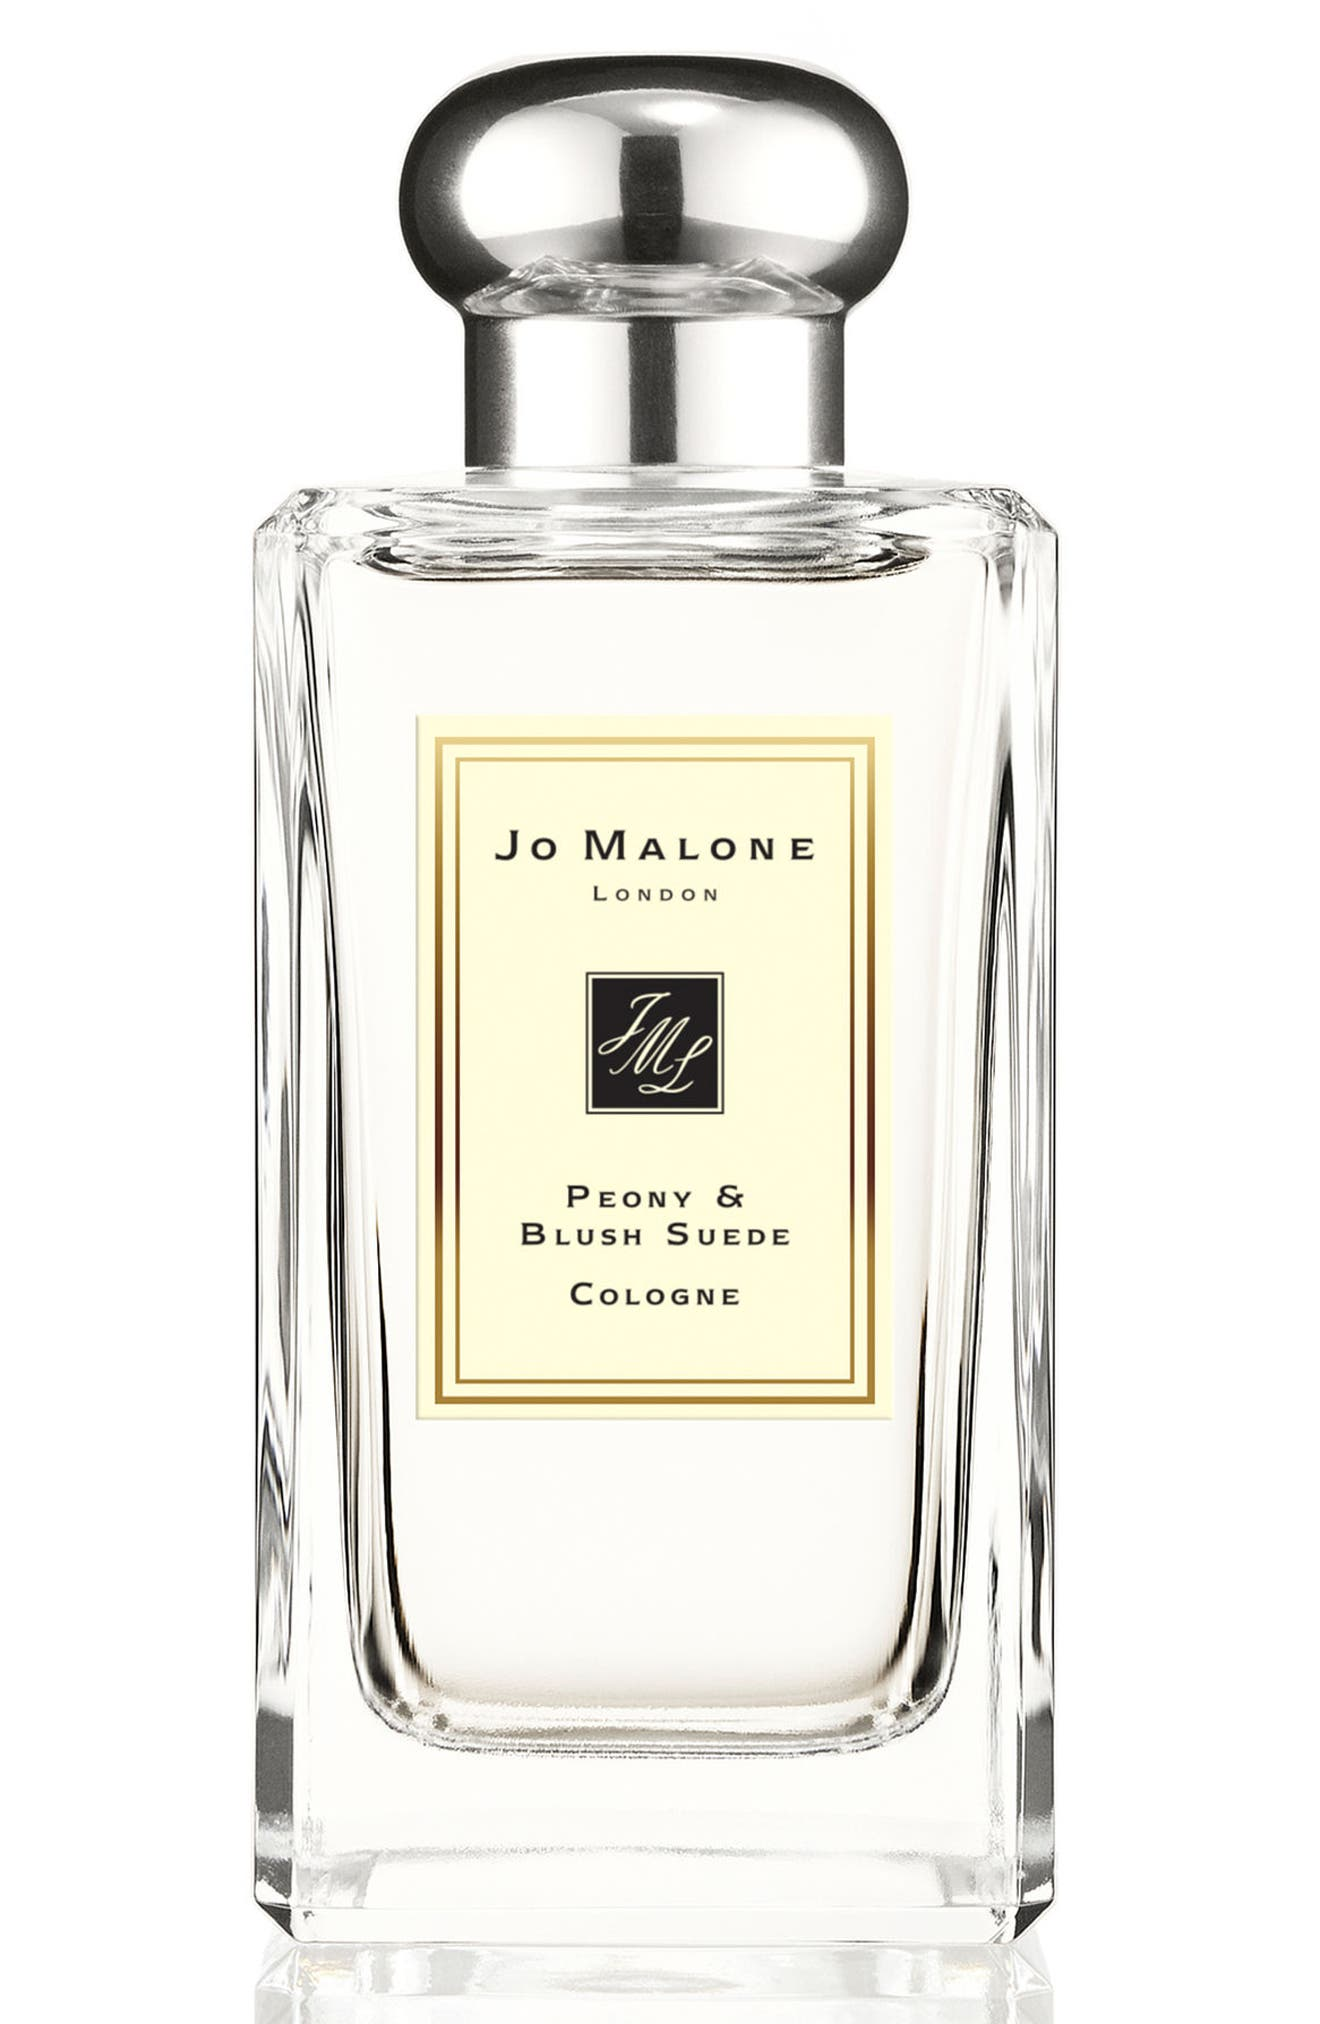 Jo Malone London™ 'Peony & Blush Suede' Cologne (3.4 oz.)